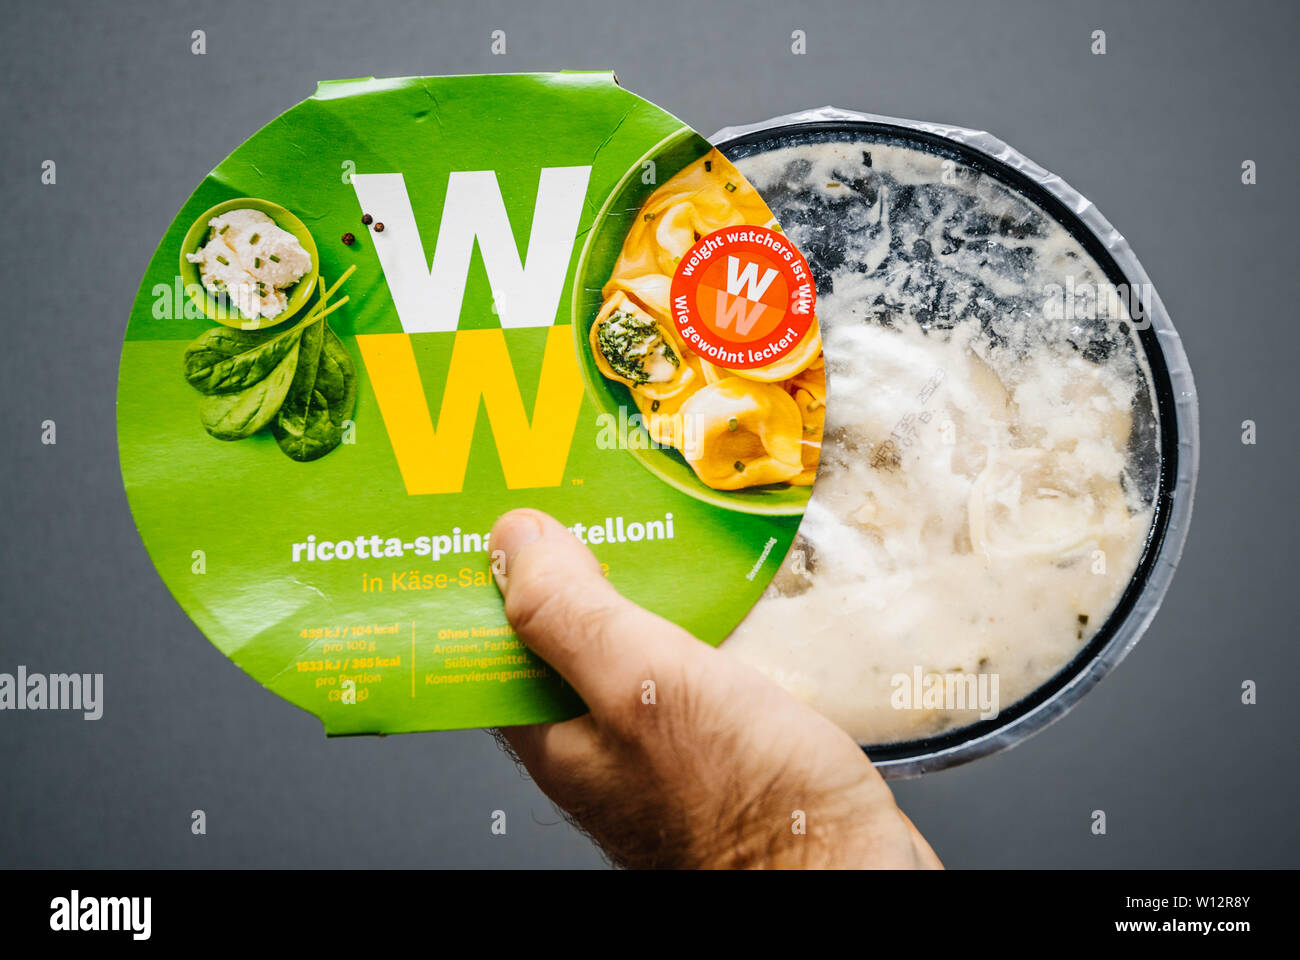 Paris, France - May 19, 2019: Man hand holding Weight Watchers Ricotta Spinach and Tortellini with cheese sauce gray background - Stock Image